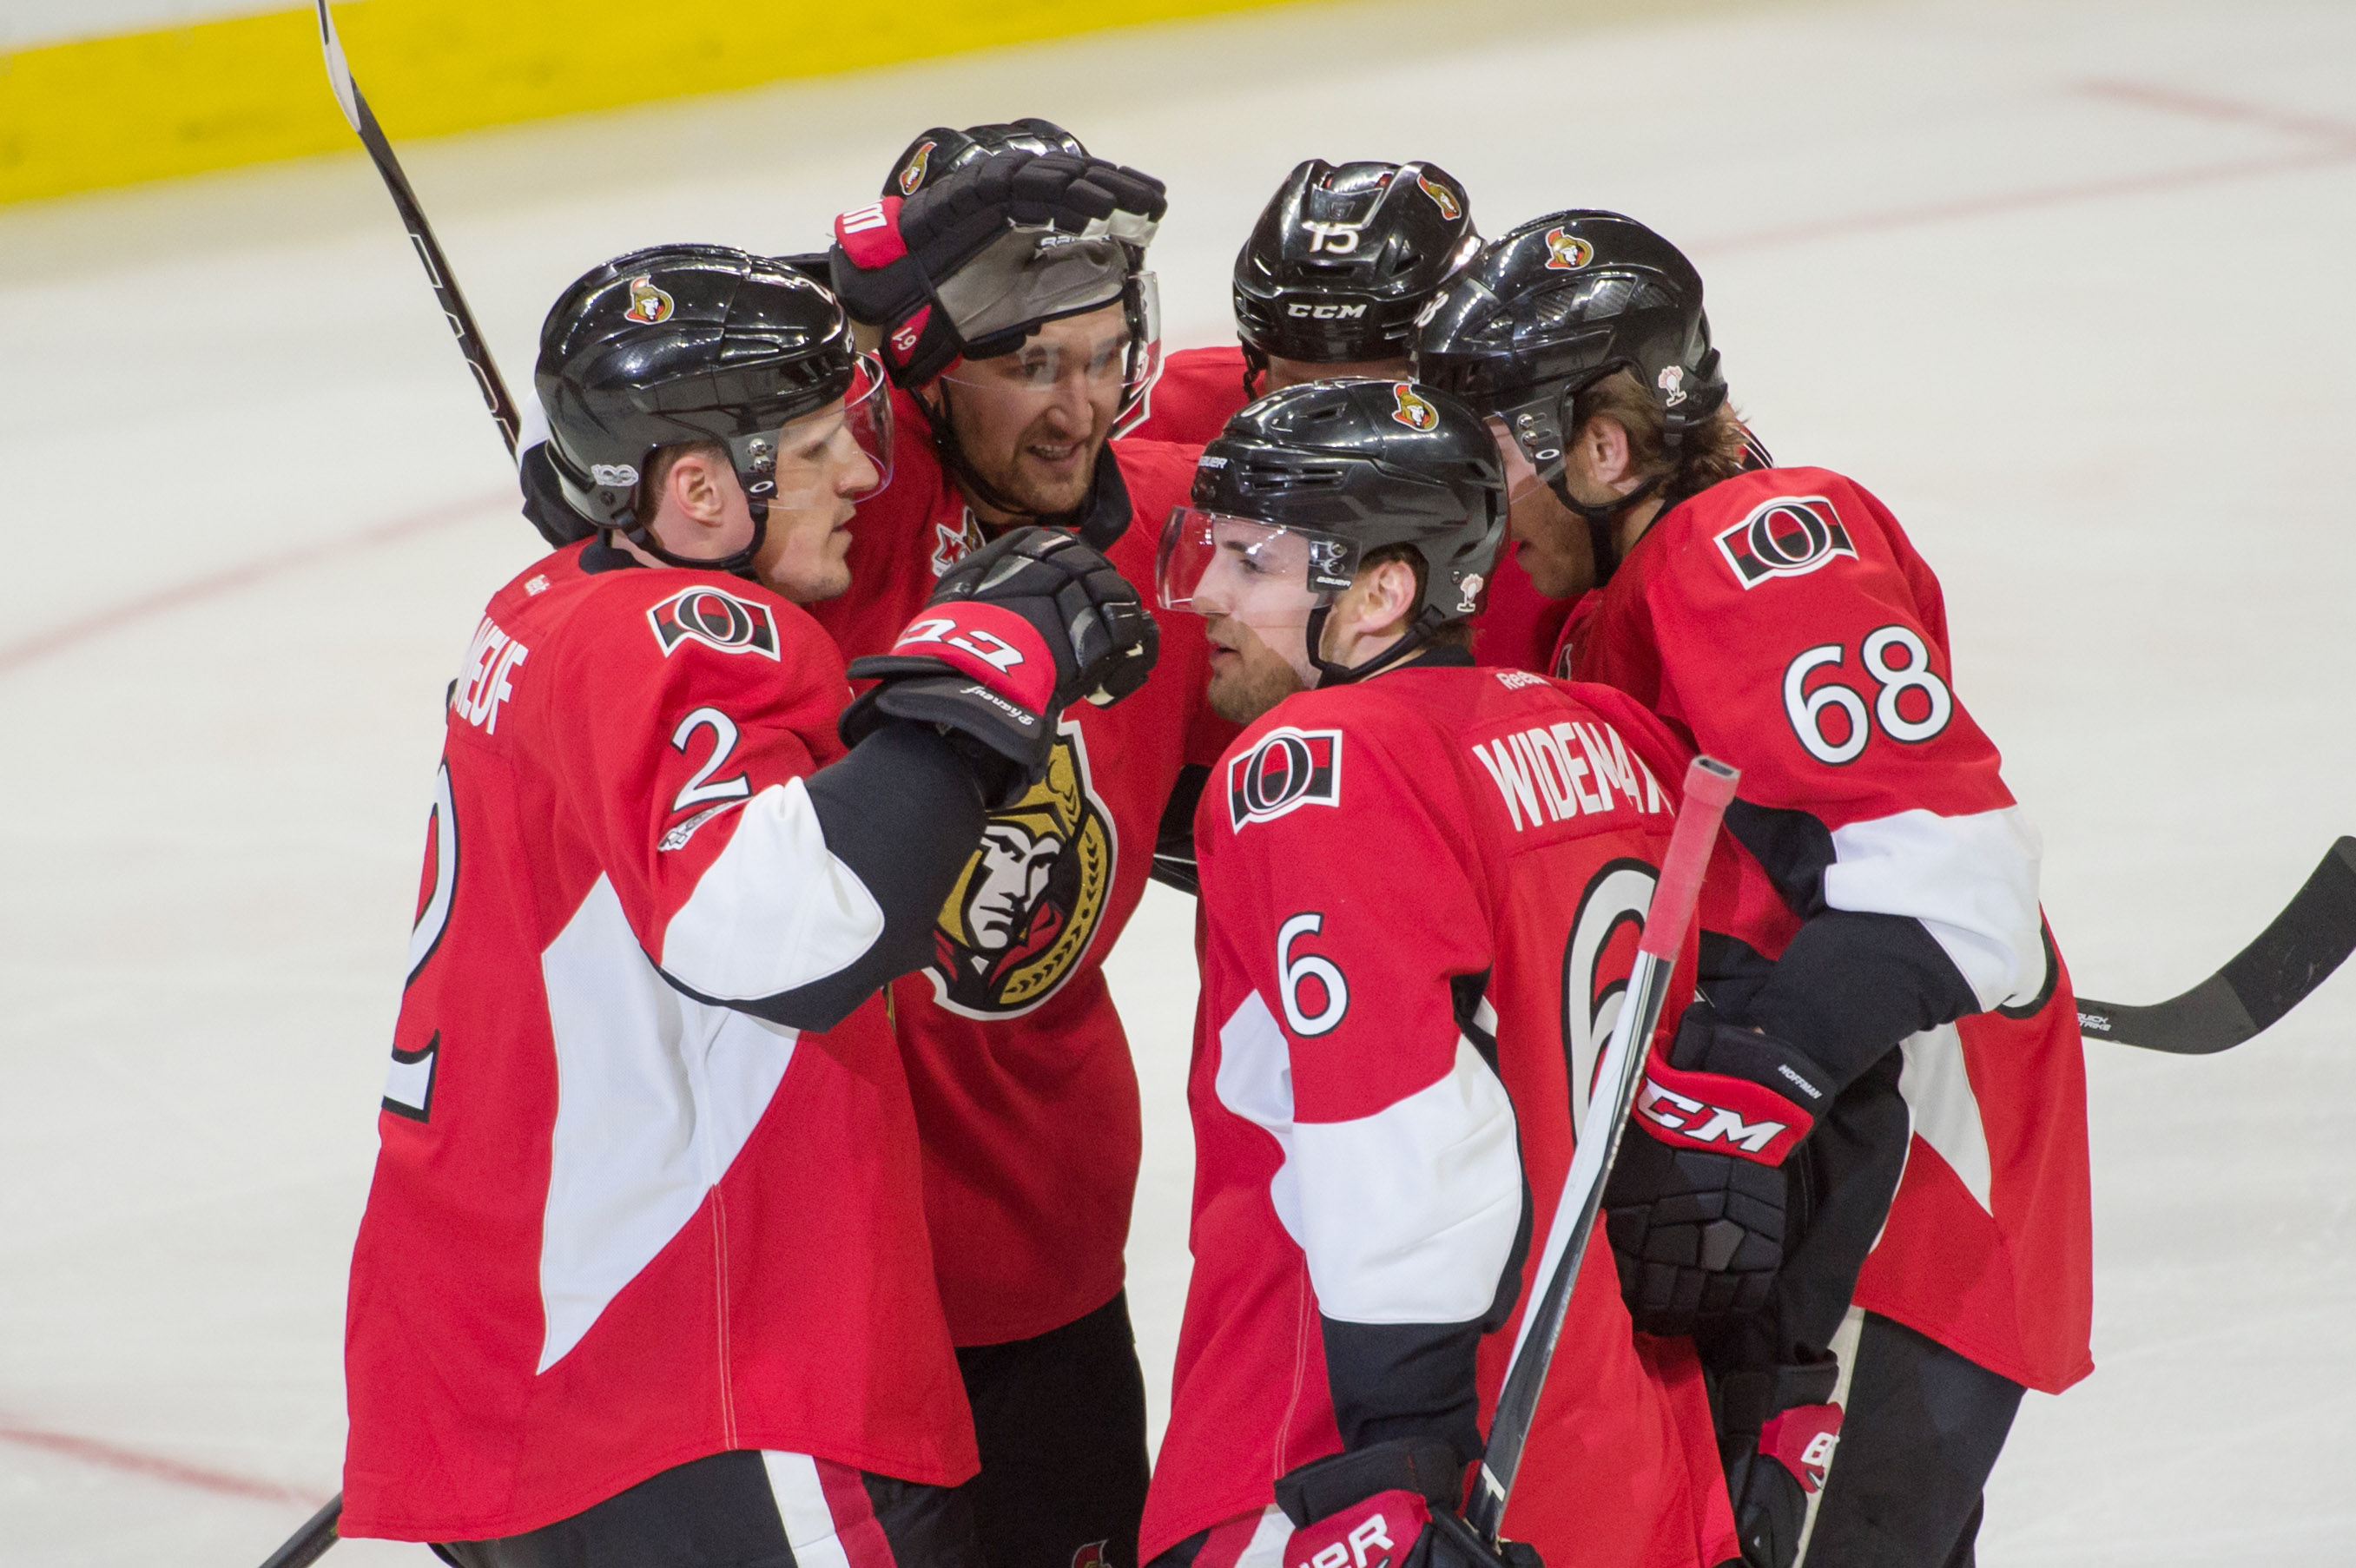 10014333-nhl-boston-bruins-at-ottawa-senators